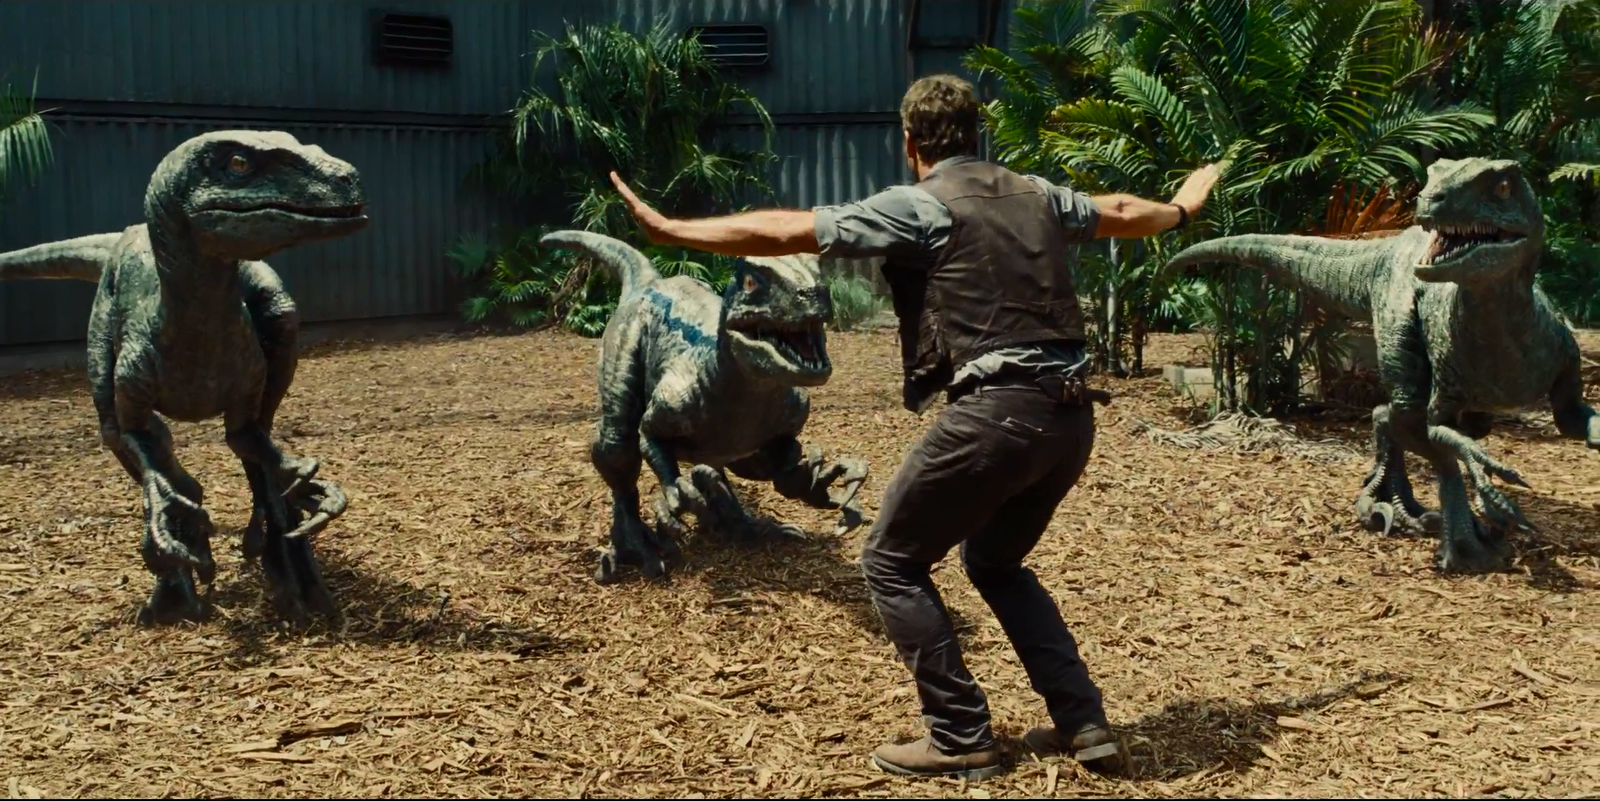 JURASSIC WORLD - Movie 2015 Colin Trevorrow Chris Pratt 1 - Go with the Blog